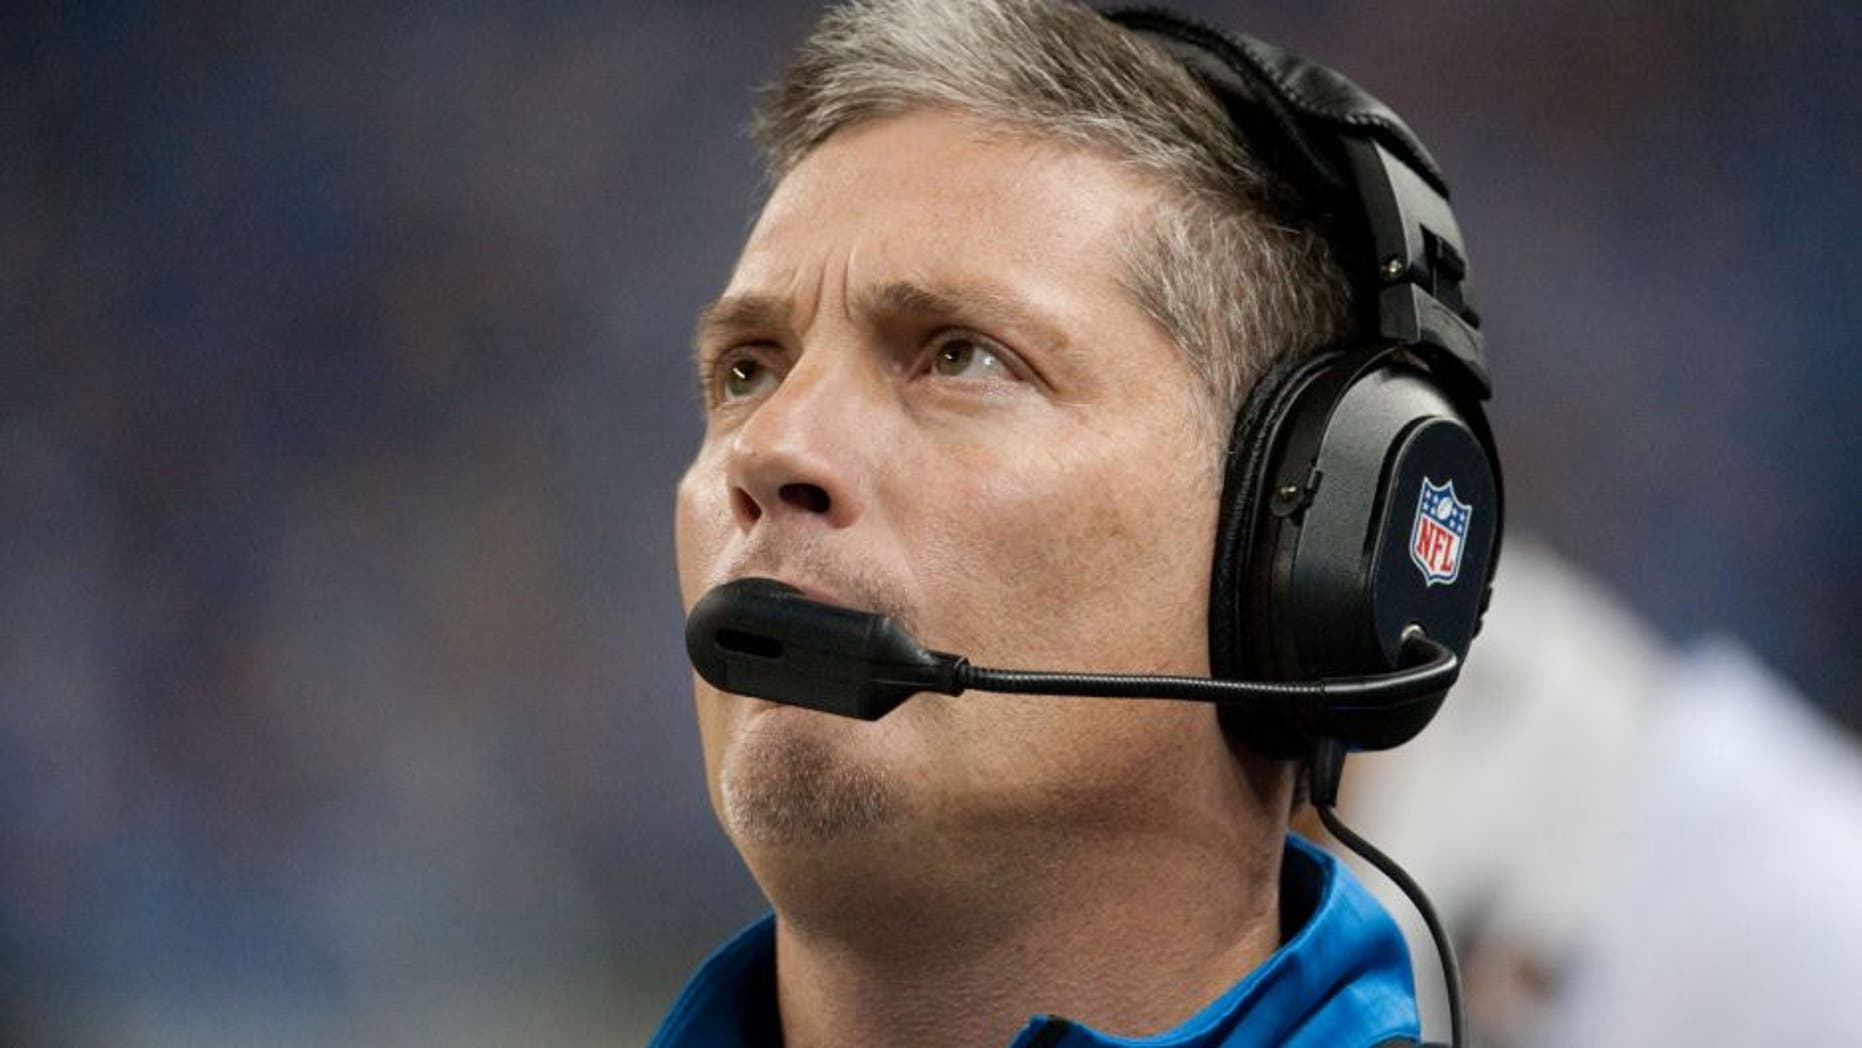 Dec 16, 2013; Detroit, MI, USA; Detroit Lions head coach Jim Schwartz during the first quarter against the Baltimore Ravens at Ford Field. Mandatory Credit: Tim Fuller-USA TODAY Sports